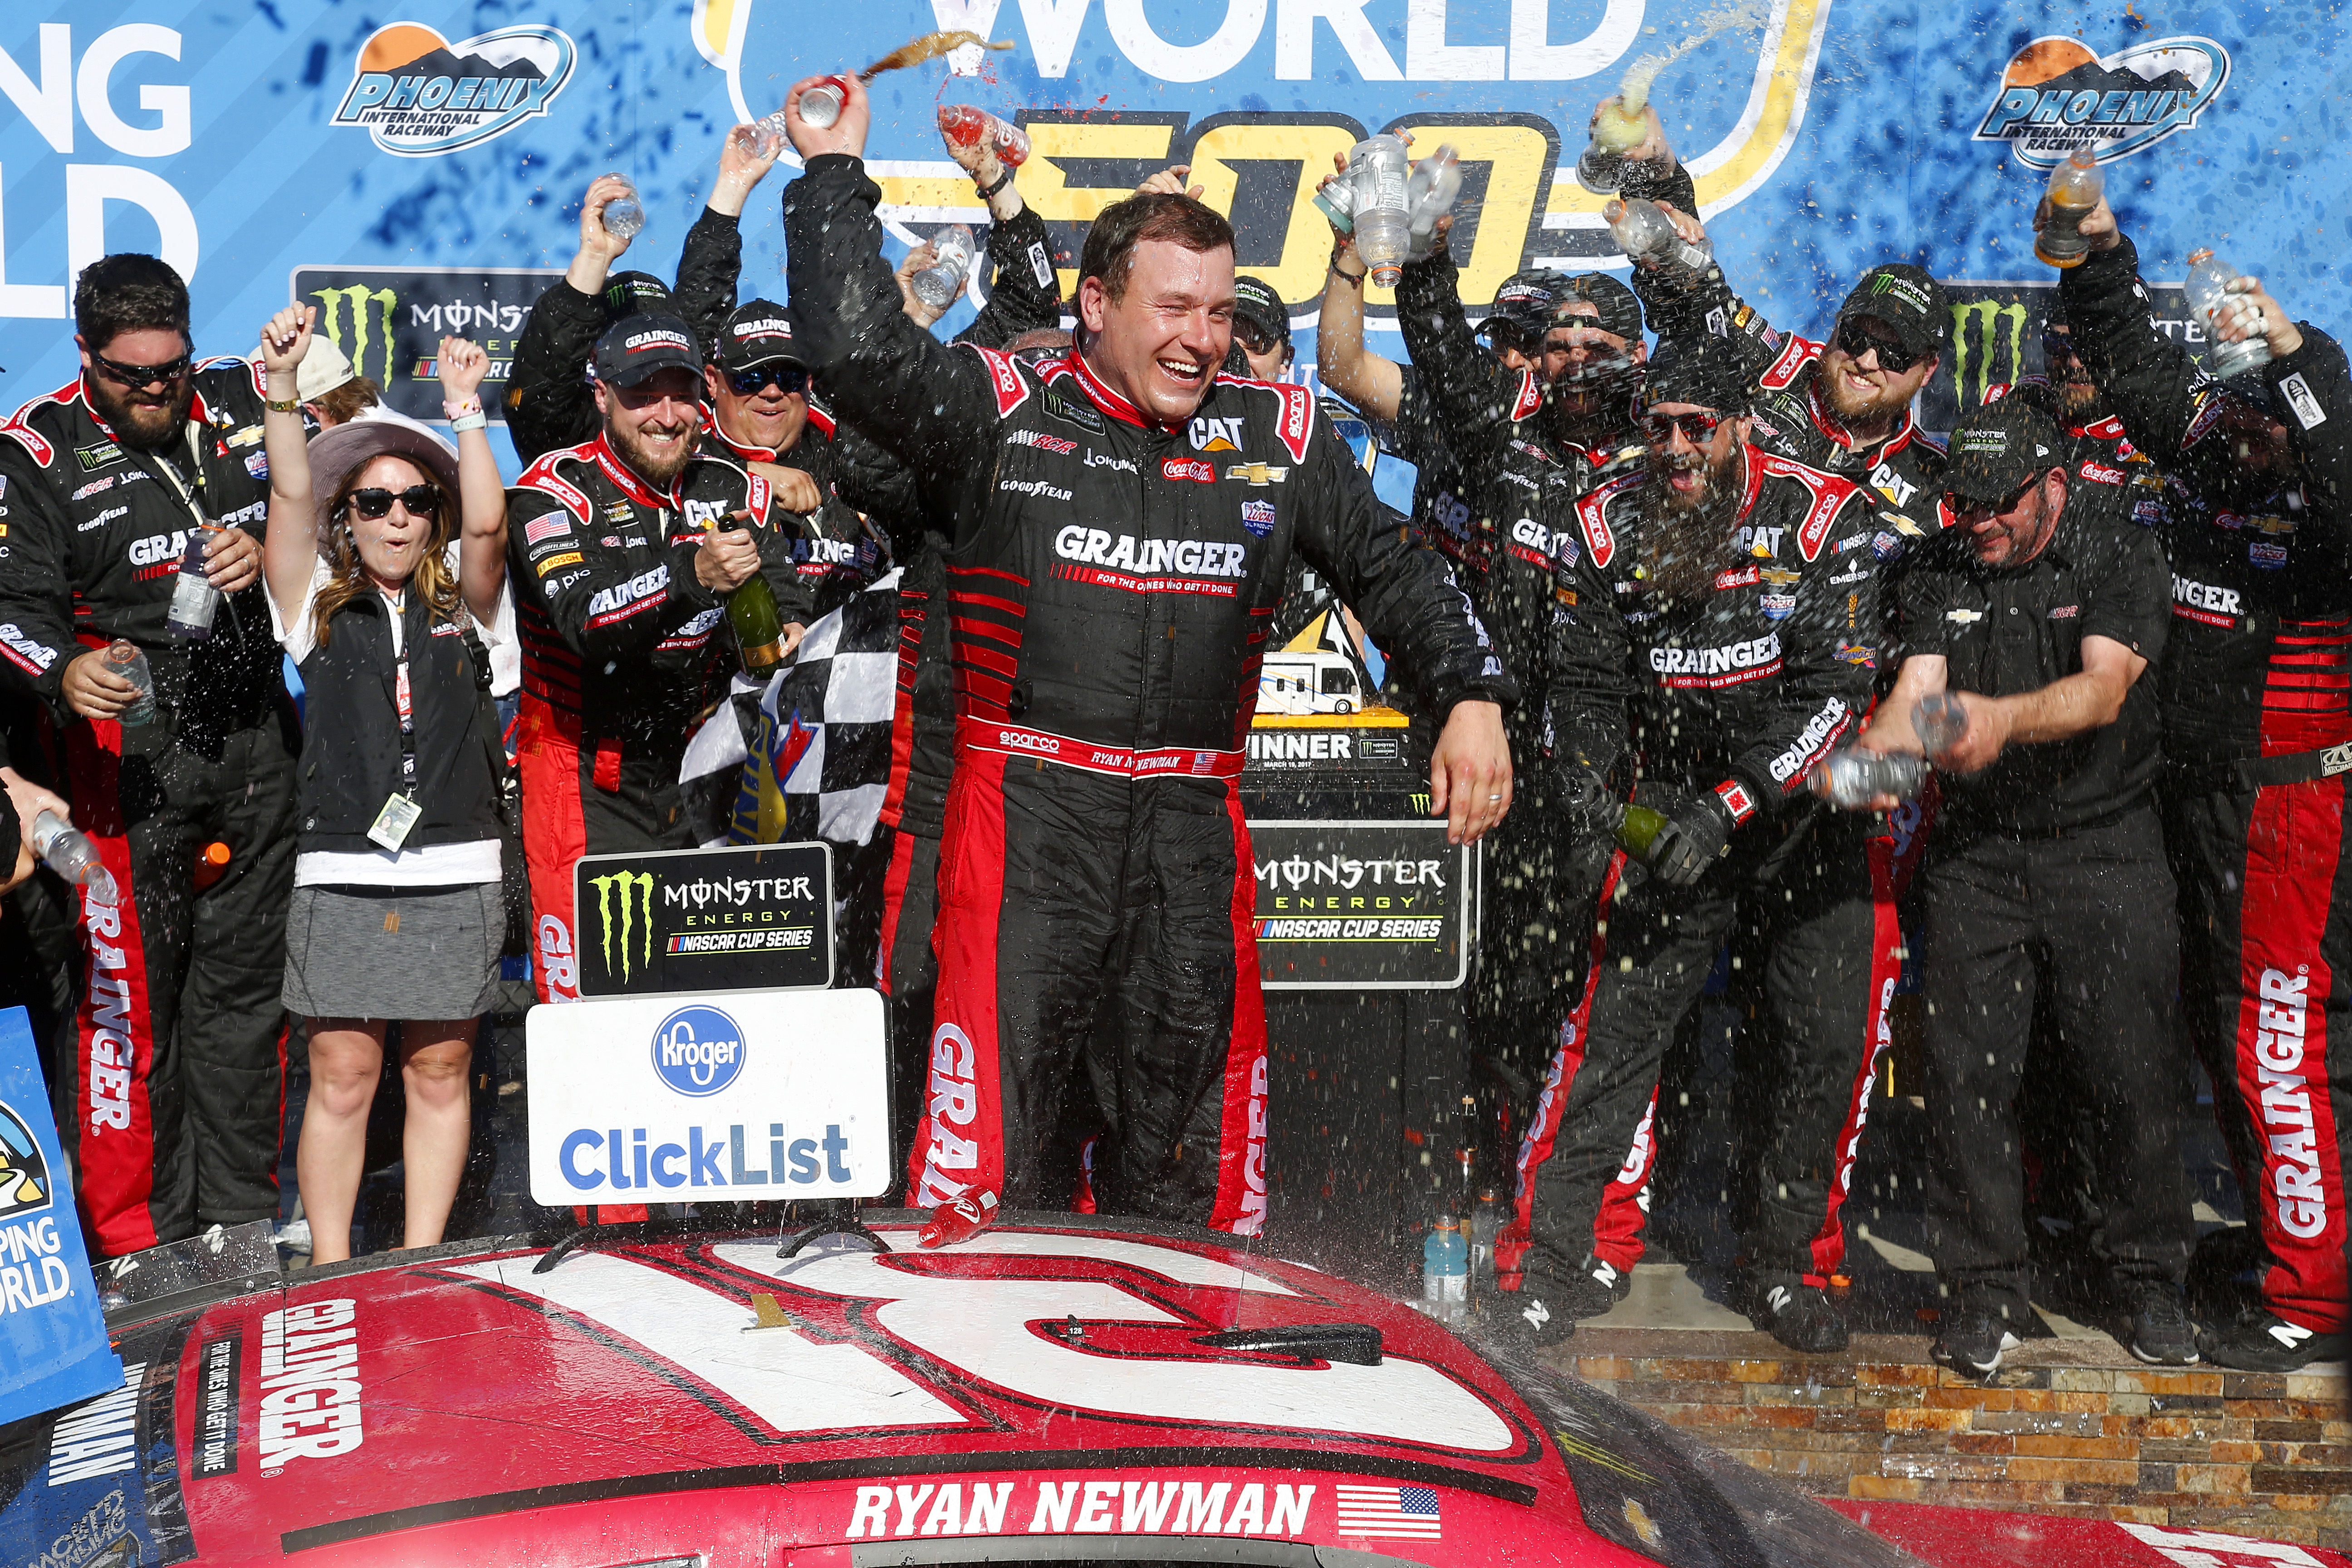 2017 Monster Energy NASCAR Cup Series Camping World 500 Phoenix International Raceway, Avondale, AZ USA Sunday 19 March 2017 Ryan Newman celebrates in victory lane World Copyright: Lesley Ann Miller/LAT Images ref: Digital Image lam_170319PHX19064